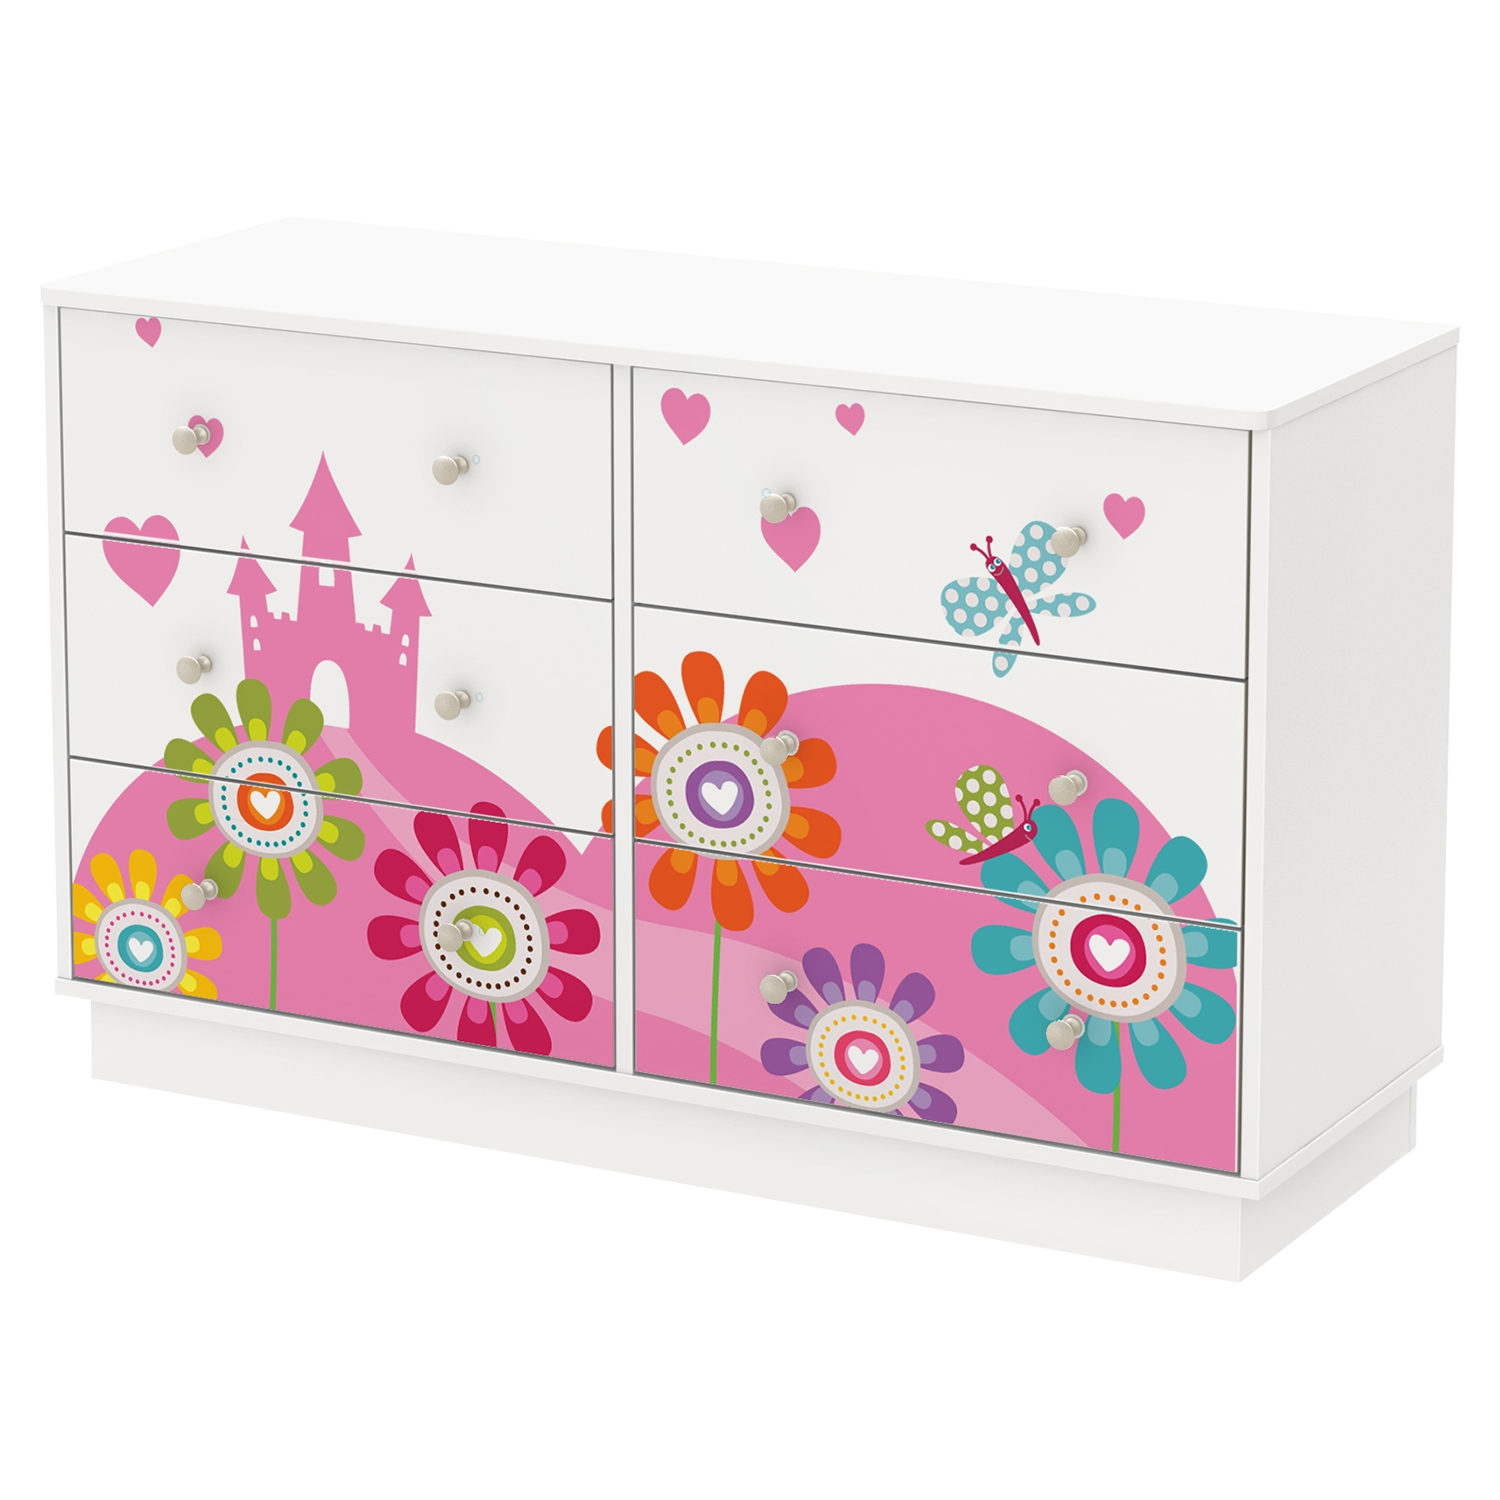 Joy 6 Drawers Double Dresser - Flowers and Castle Decals, Pure White - SS-8050009K